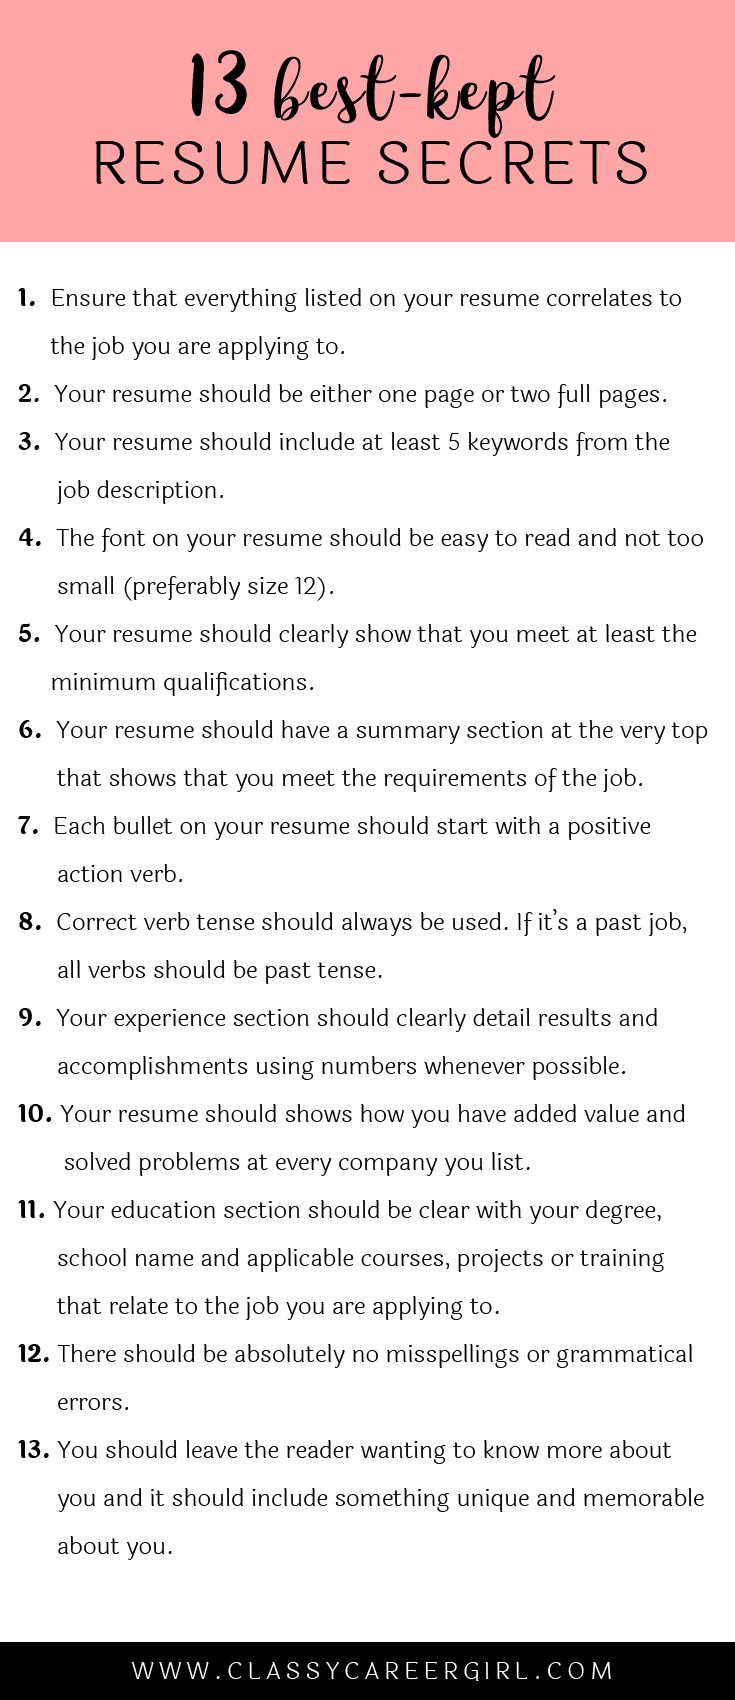 Opposenewapstandardsus  Remarkable  Ideas About Resume On Pinterest  Cv Format Resume Cv And  With Luxury Some Hiring Managers Will Toss Your Resume Out If You Dont Know These  With Easy On The Eye Design Resume Template Also Salary History On Resume In Addition High School Education On Resume And Summa Cum Laude Resume As Well As Veterinarian Resume Additionally Word Resume Template Download From Pinterestcom With Opposenewapstandardsus  Luxury  Ideas About Resume On Pinterest  Cv Format Resume Cv And  With Easy On The Eye Some Hiring Managers Will Toss Your Resume Out If You Dont Know These  And Remarkable Design Resume Template Also Salary History On Resume In Addition High School Education On Resume From Pinterestcom